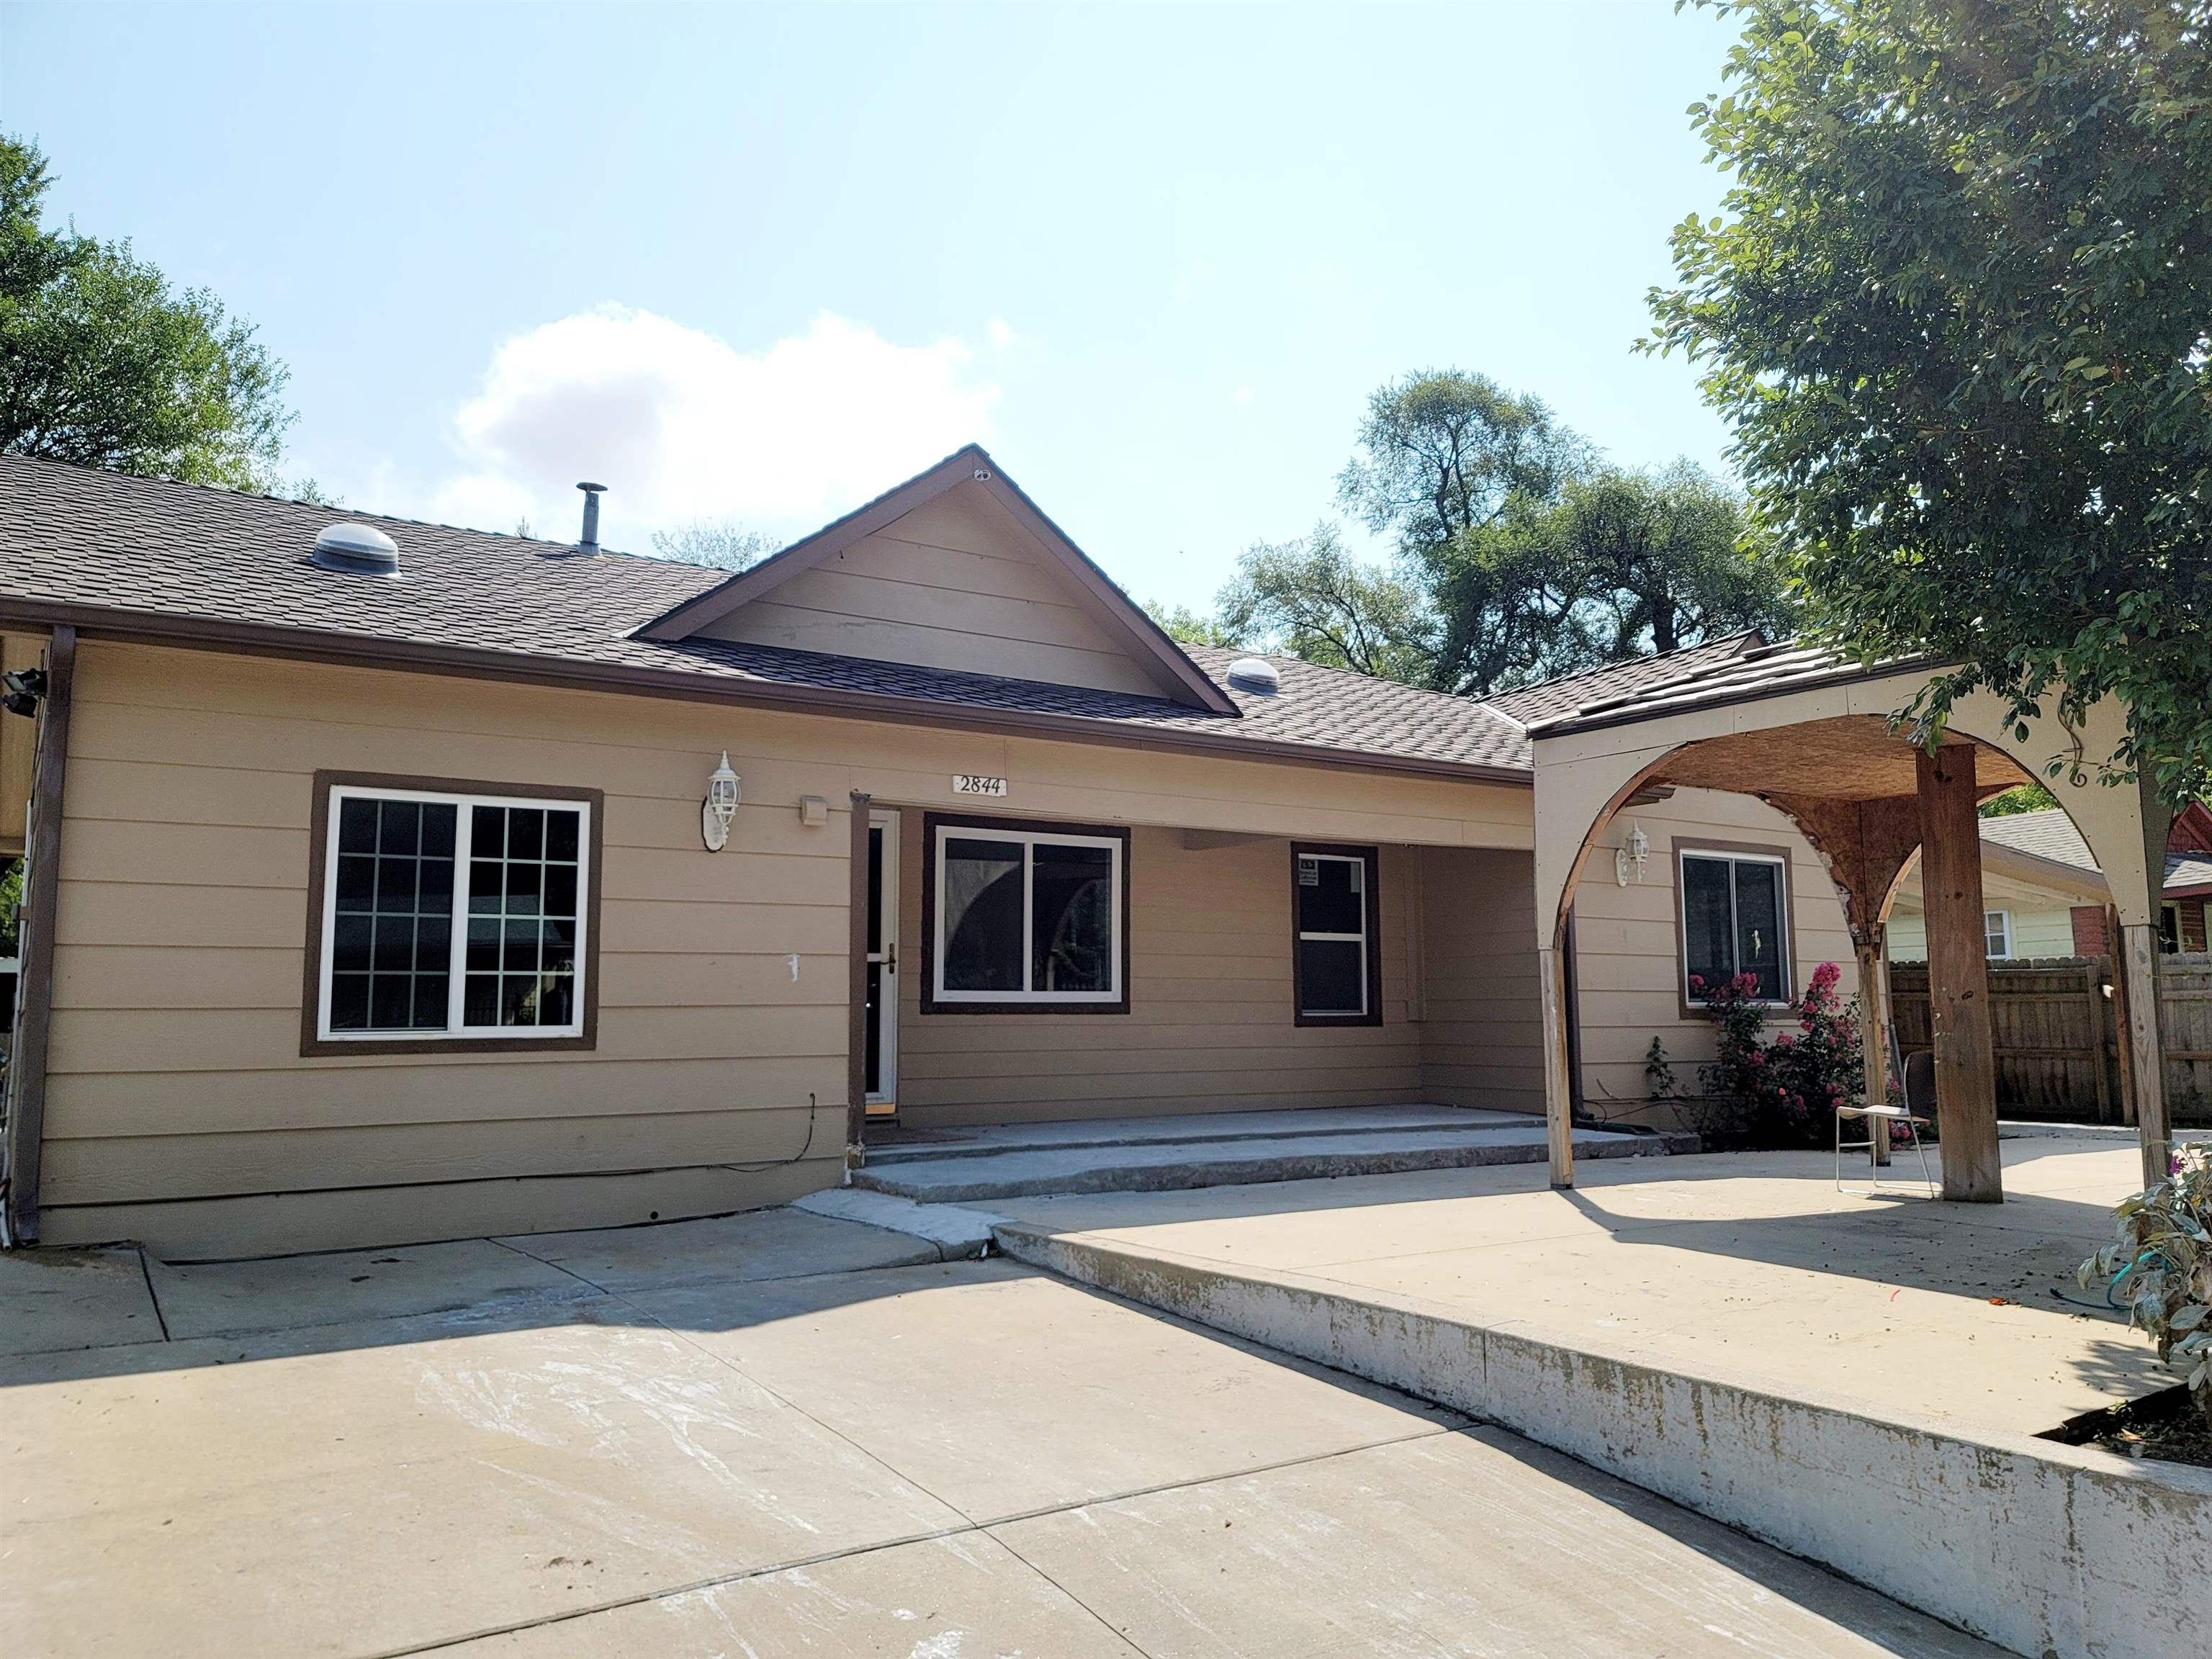 Welcome home! This is a must see spacious 3 bedroom 2 bath home. If you are looking for space and ch